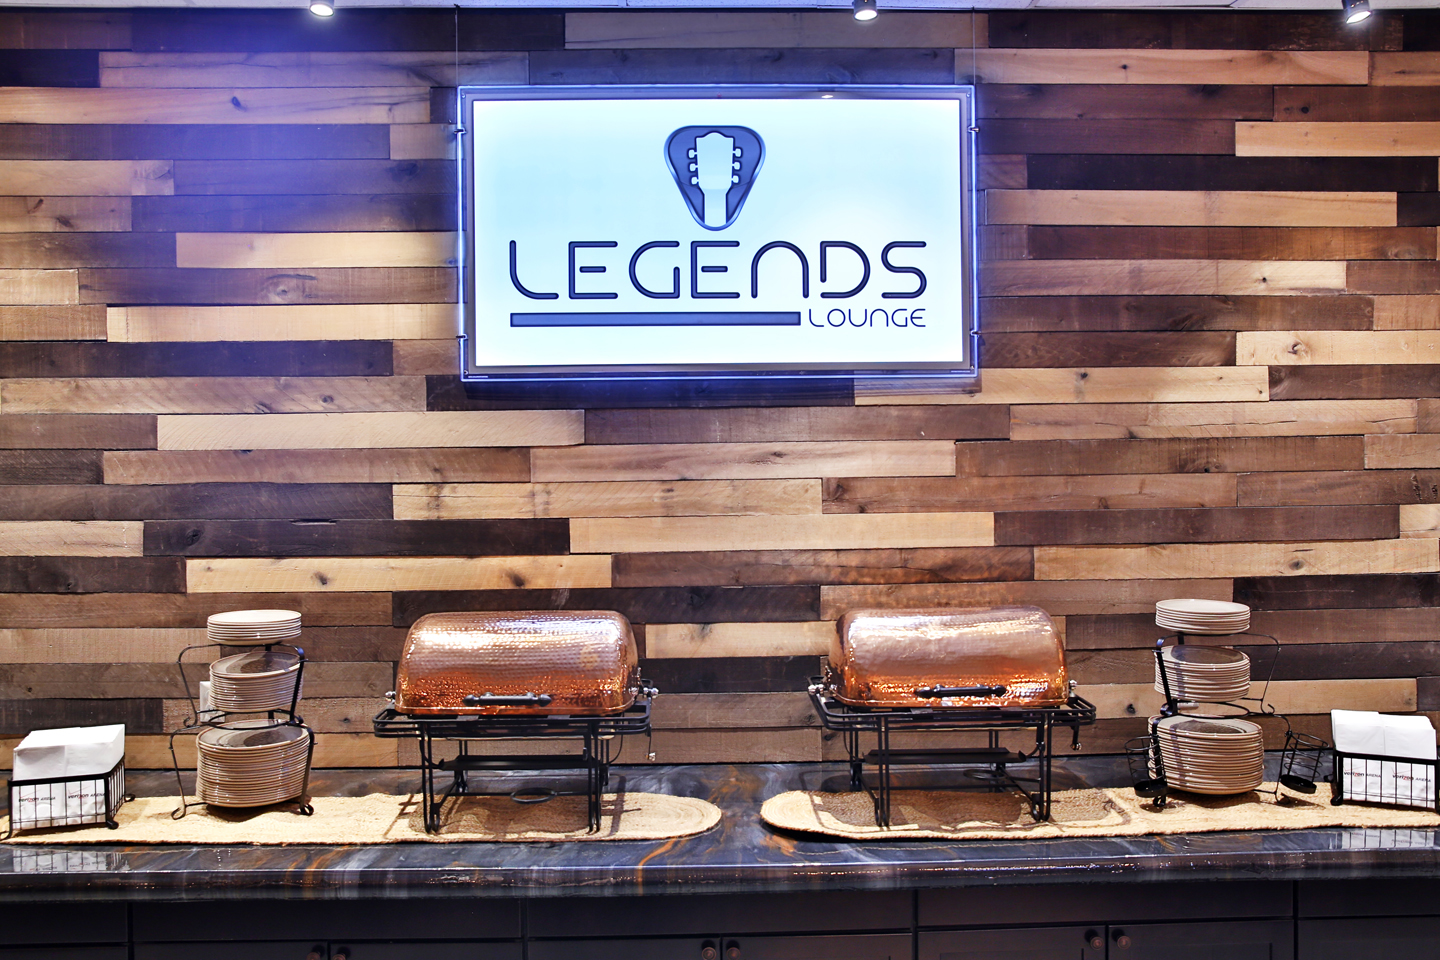 Legends Lounge